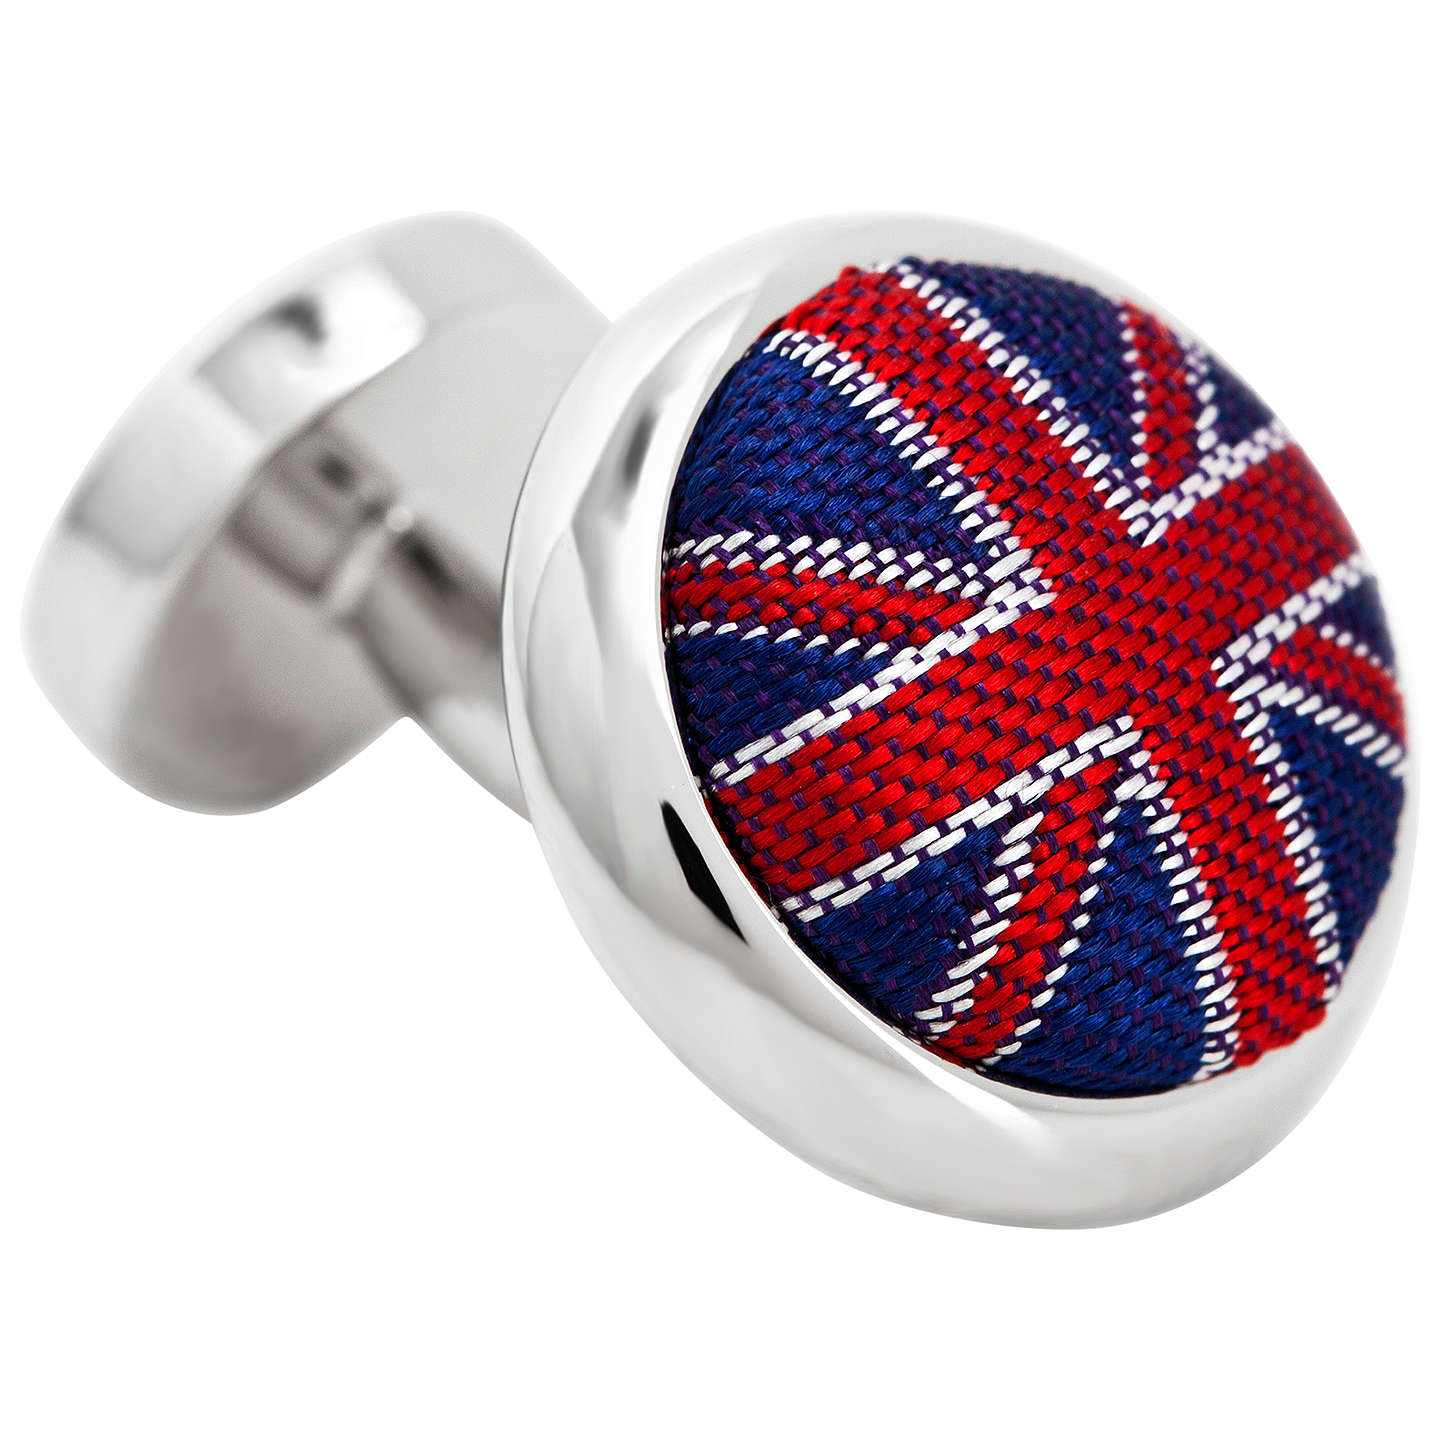 Buythomas Pink Union Jack Cufflinks, Navyred Online At Johnlewiscom